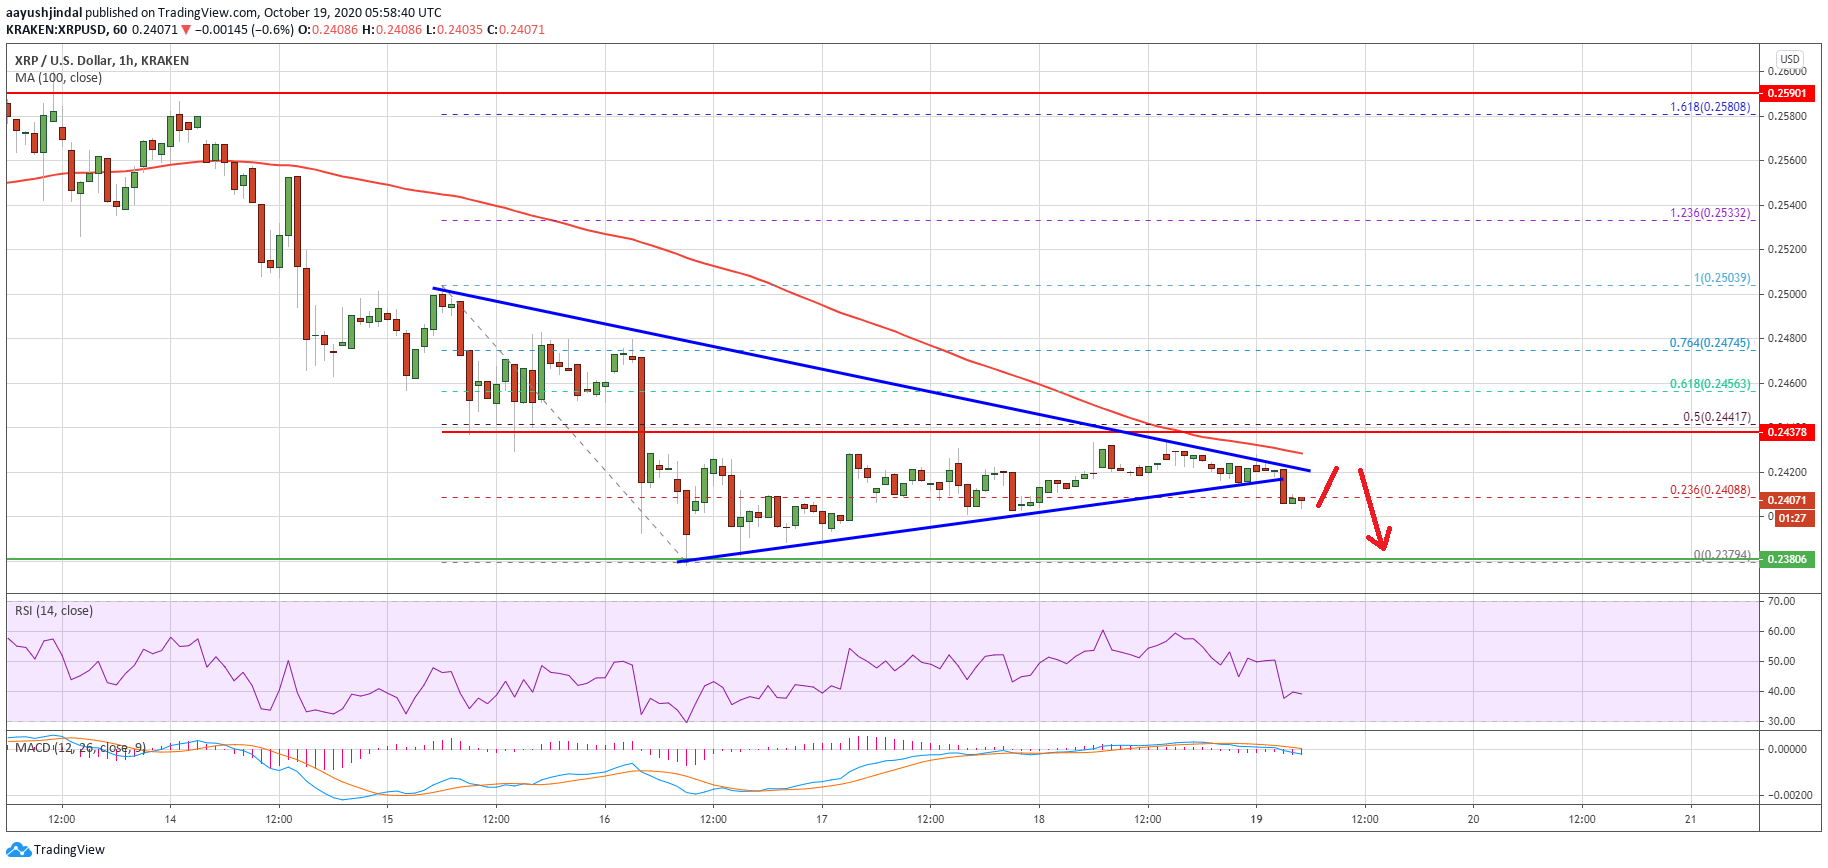 Charted: Ripple (XRP) Technicals Suggest a Crucial Breakdown Below $0.24